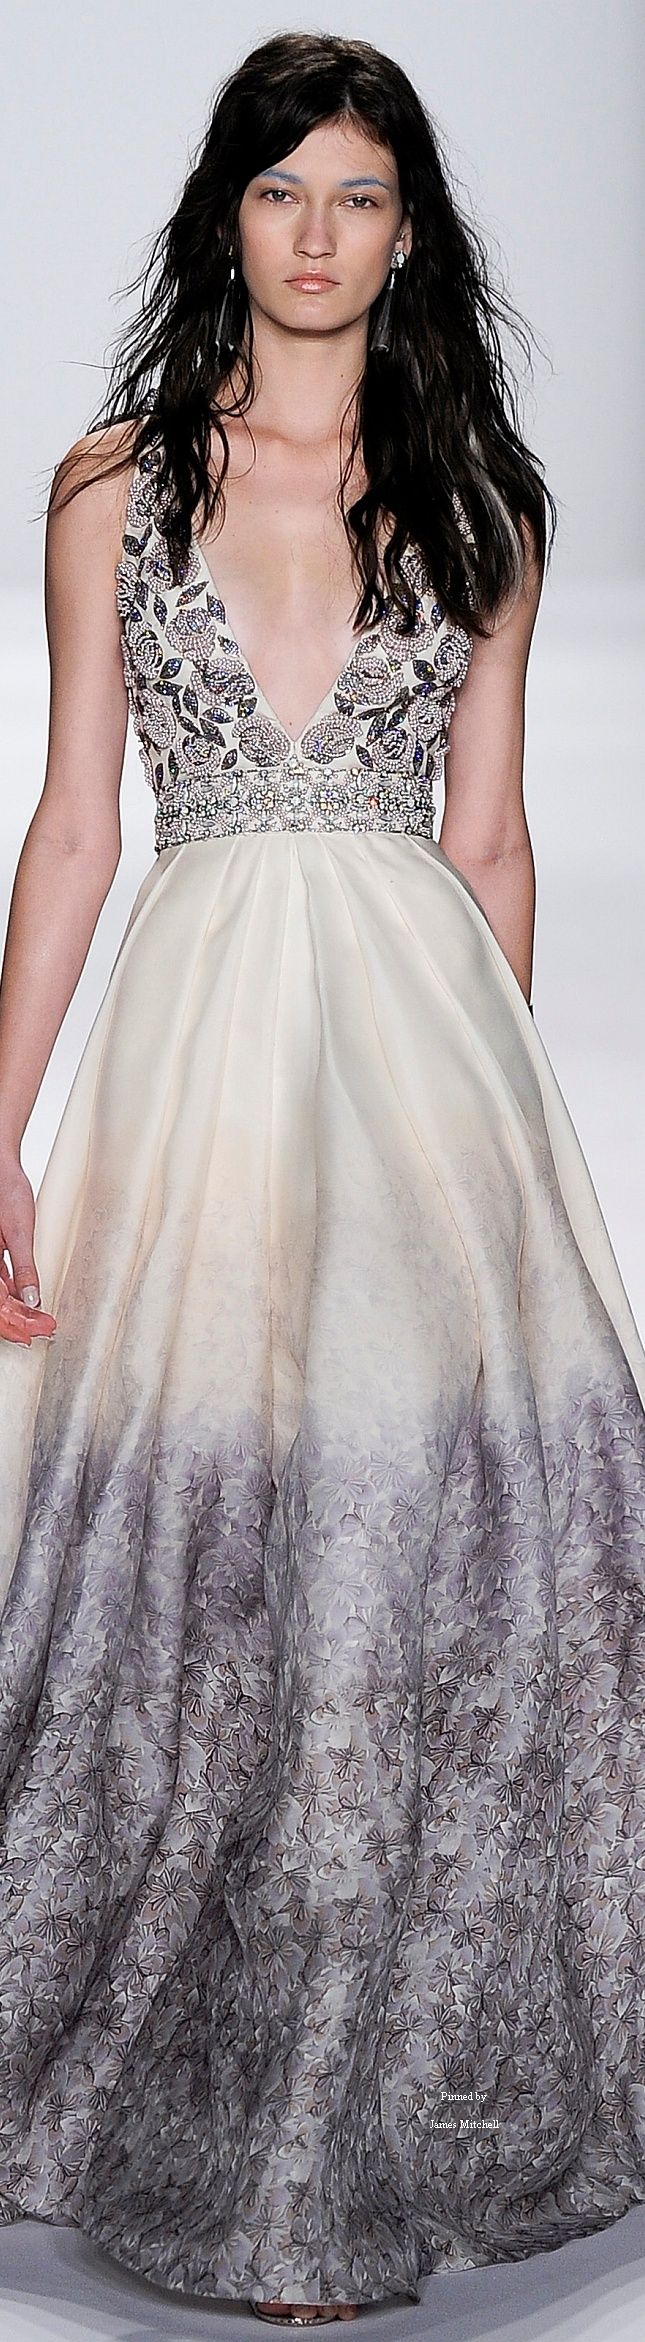 Badgley Mischka ~ Spring Gown w Embellished Bodice & Floral Skirt, White+Grey 2015